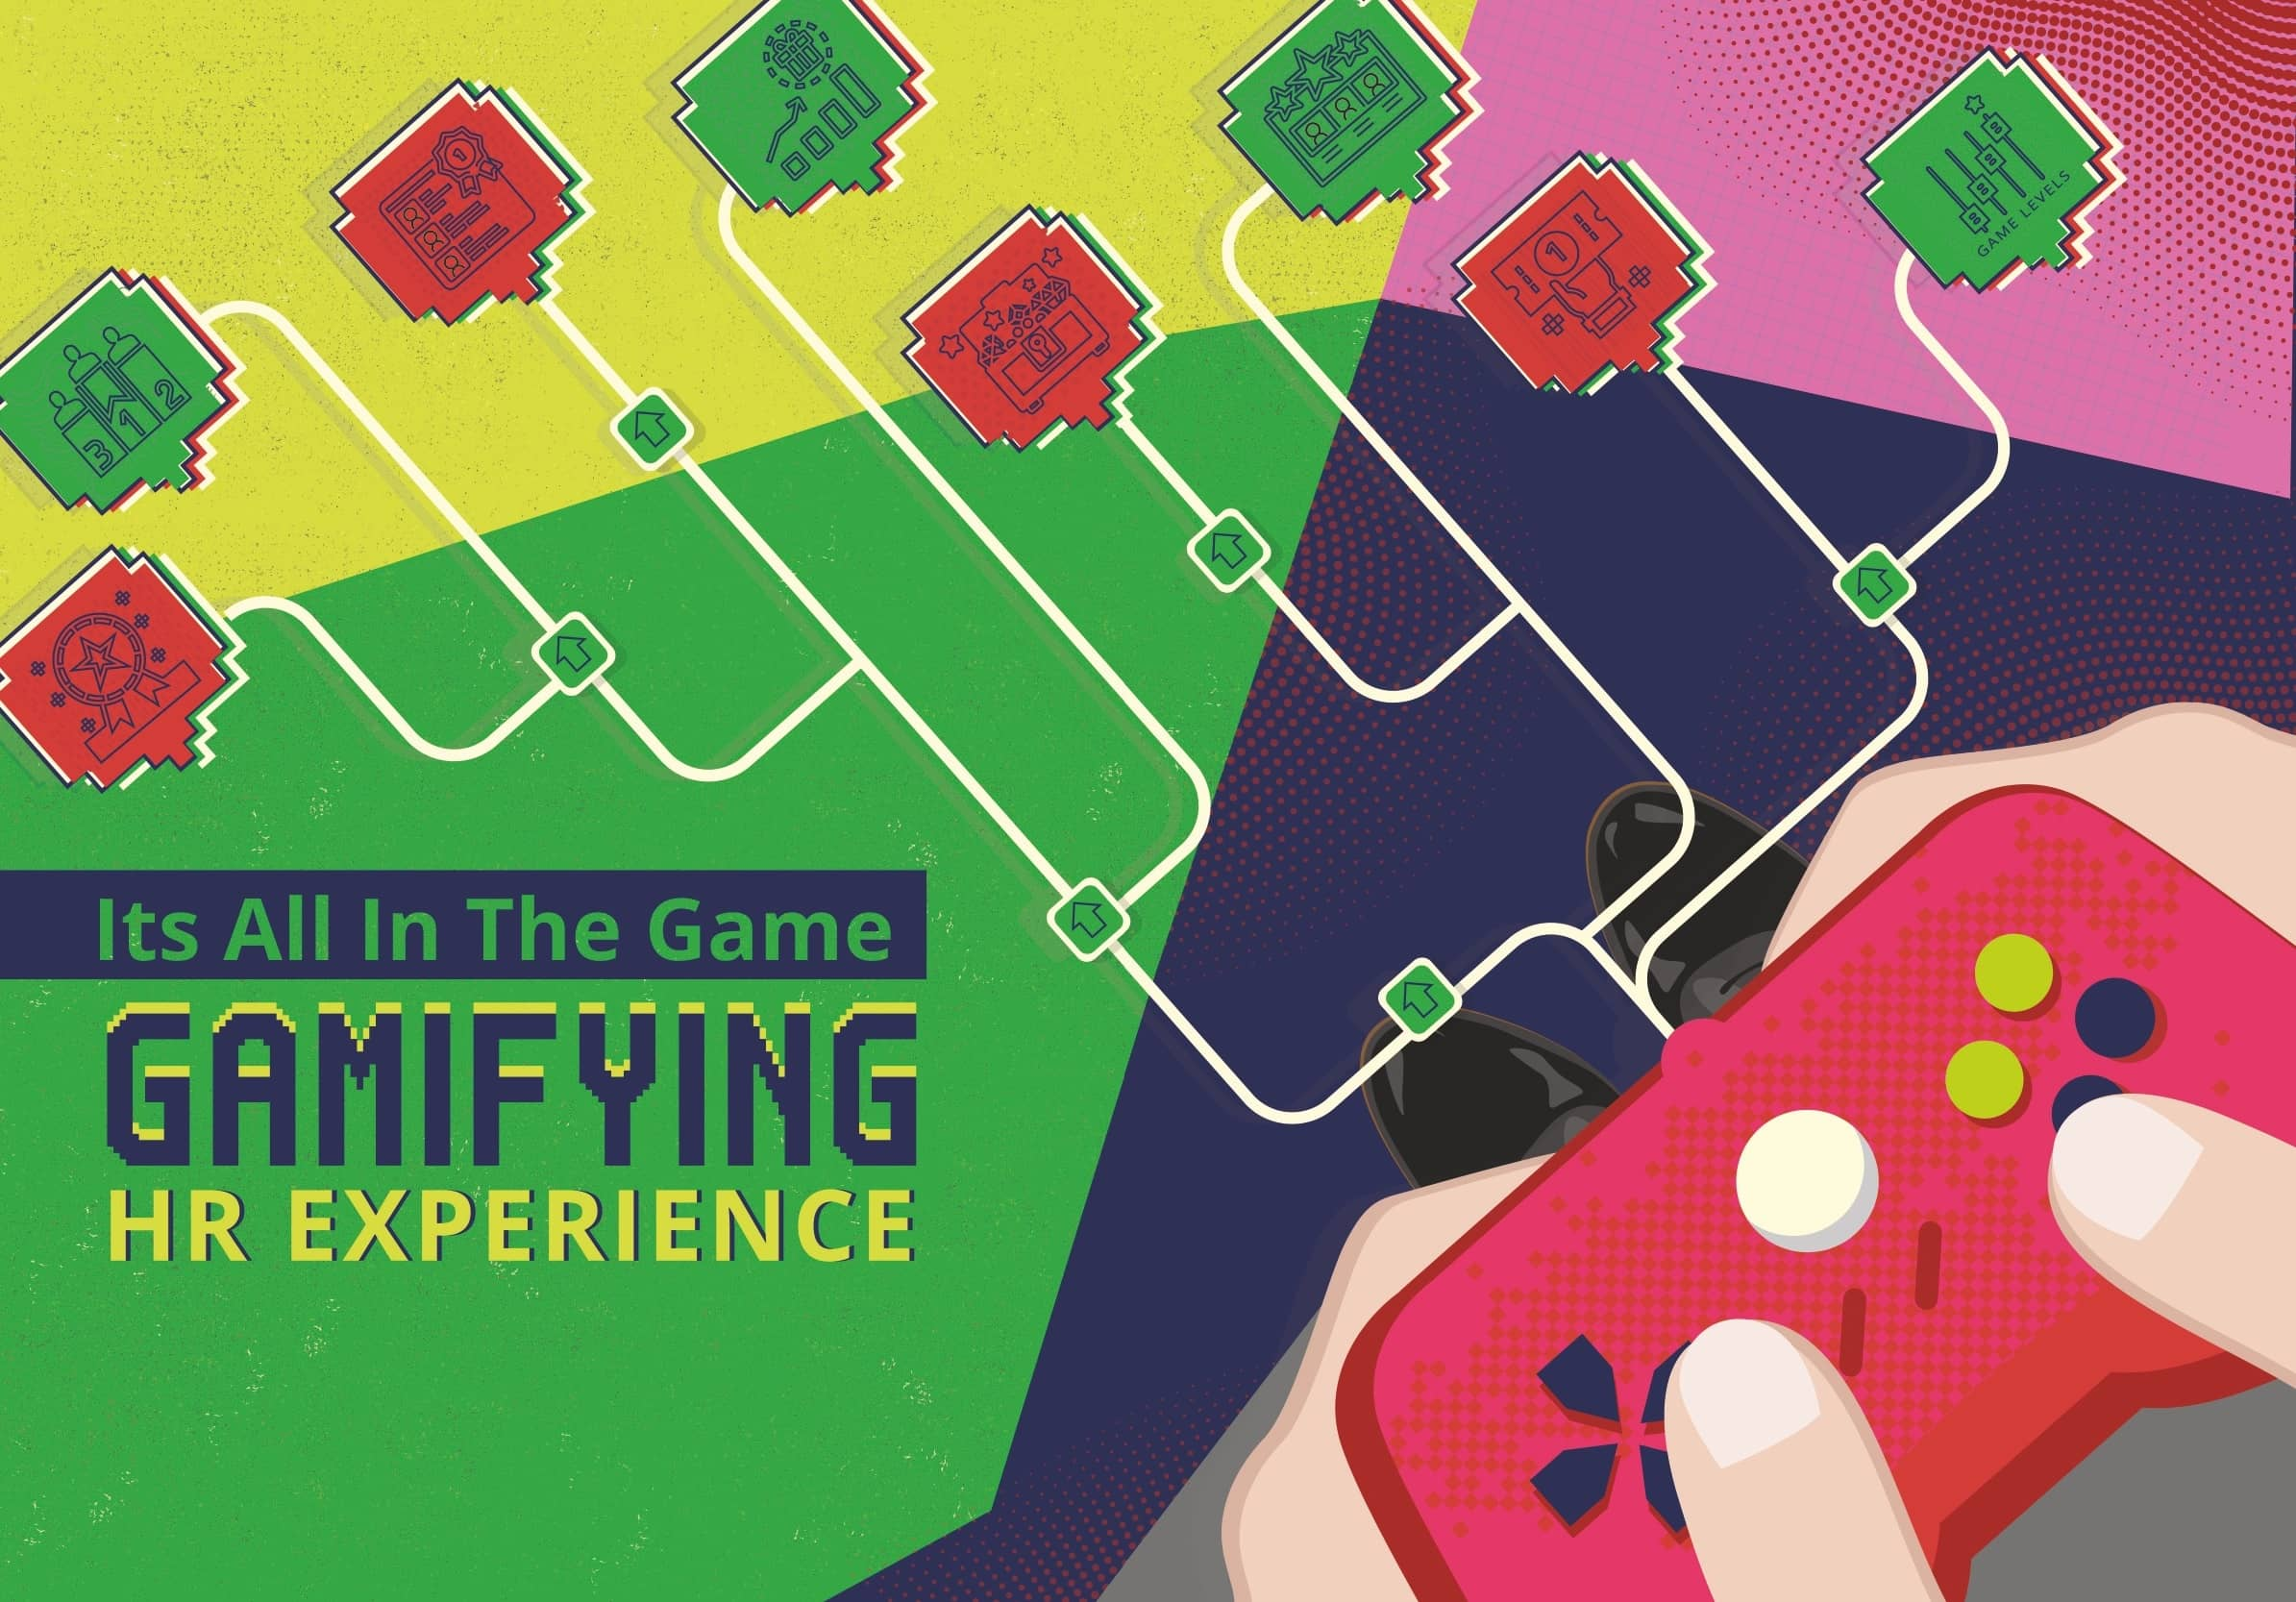 Its All In The Game - Gamifying HR Experience